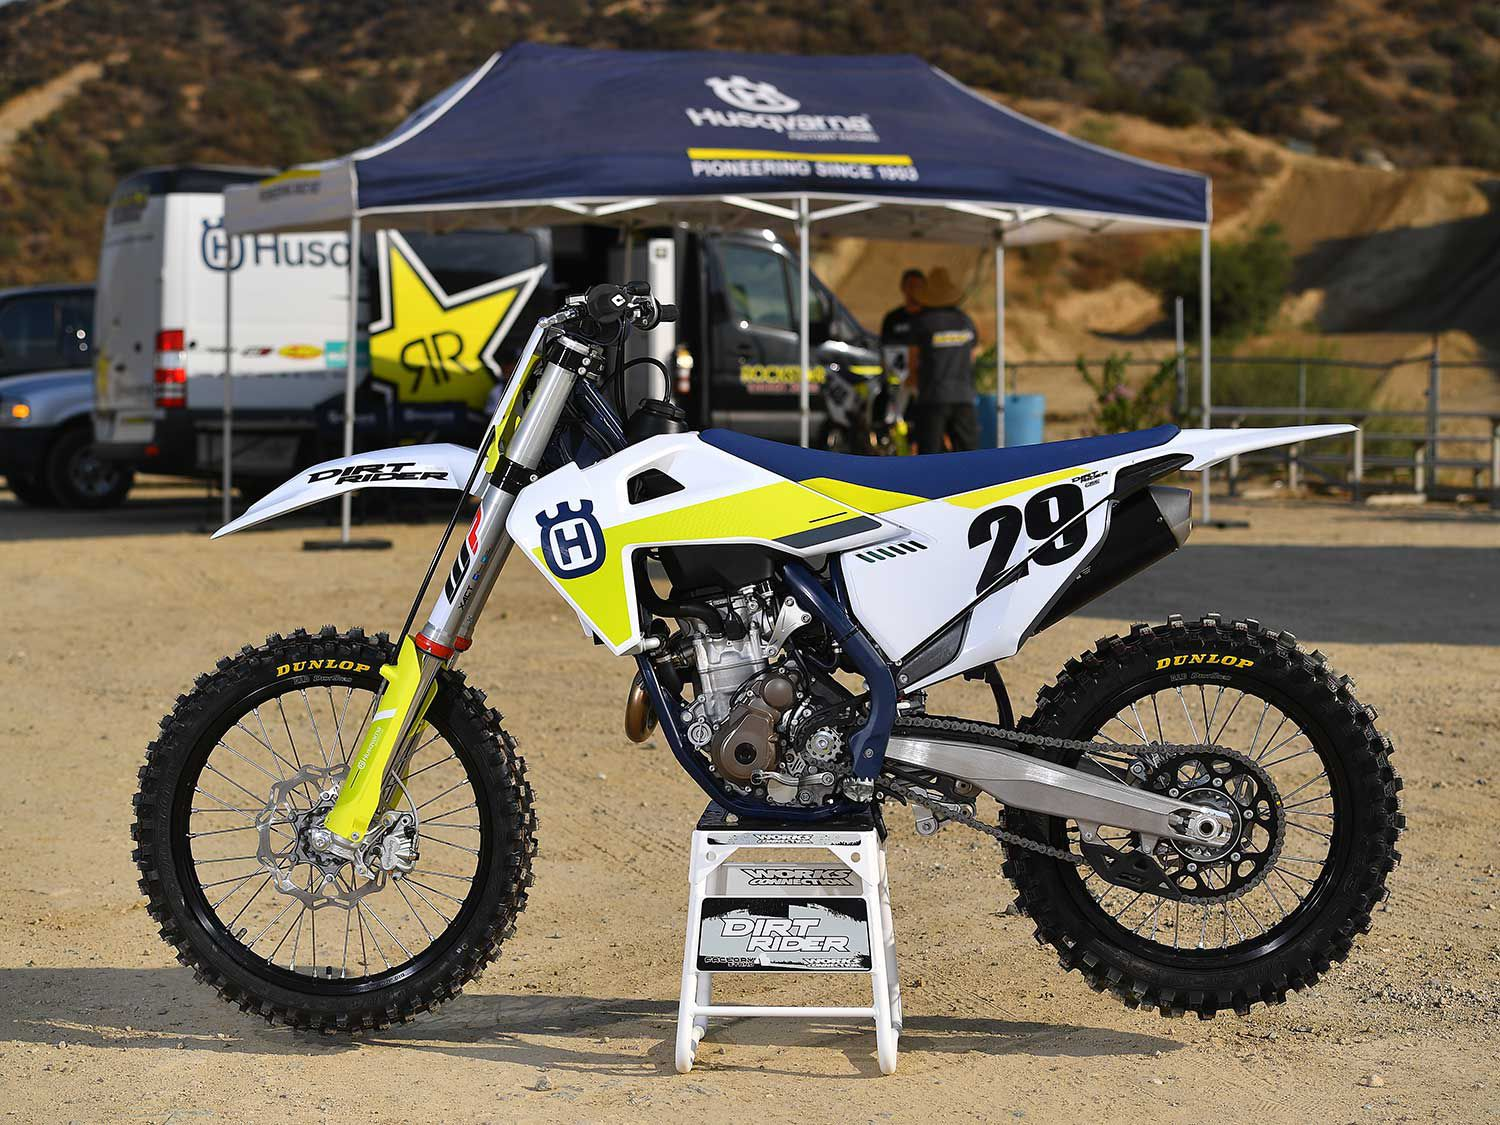 With shorter fork cartridges and outer tubes along with a revised shock linkage, the 2021 FC 350 is 10mm lower than the prior year model. The claimed seat height is 37 inches.